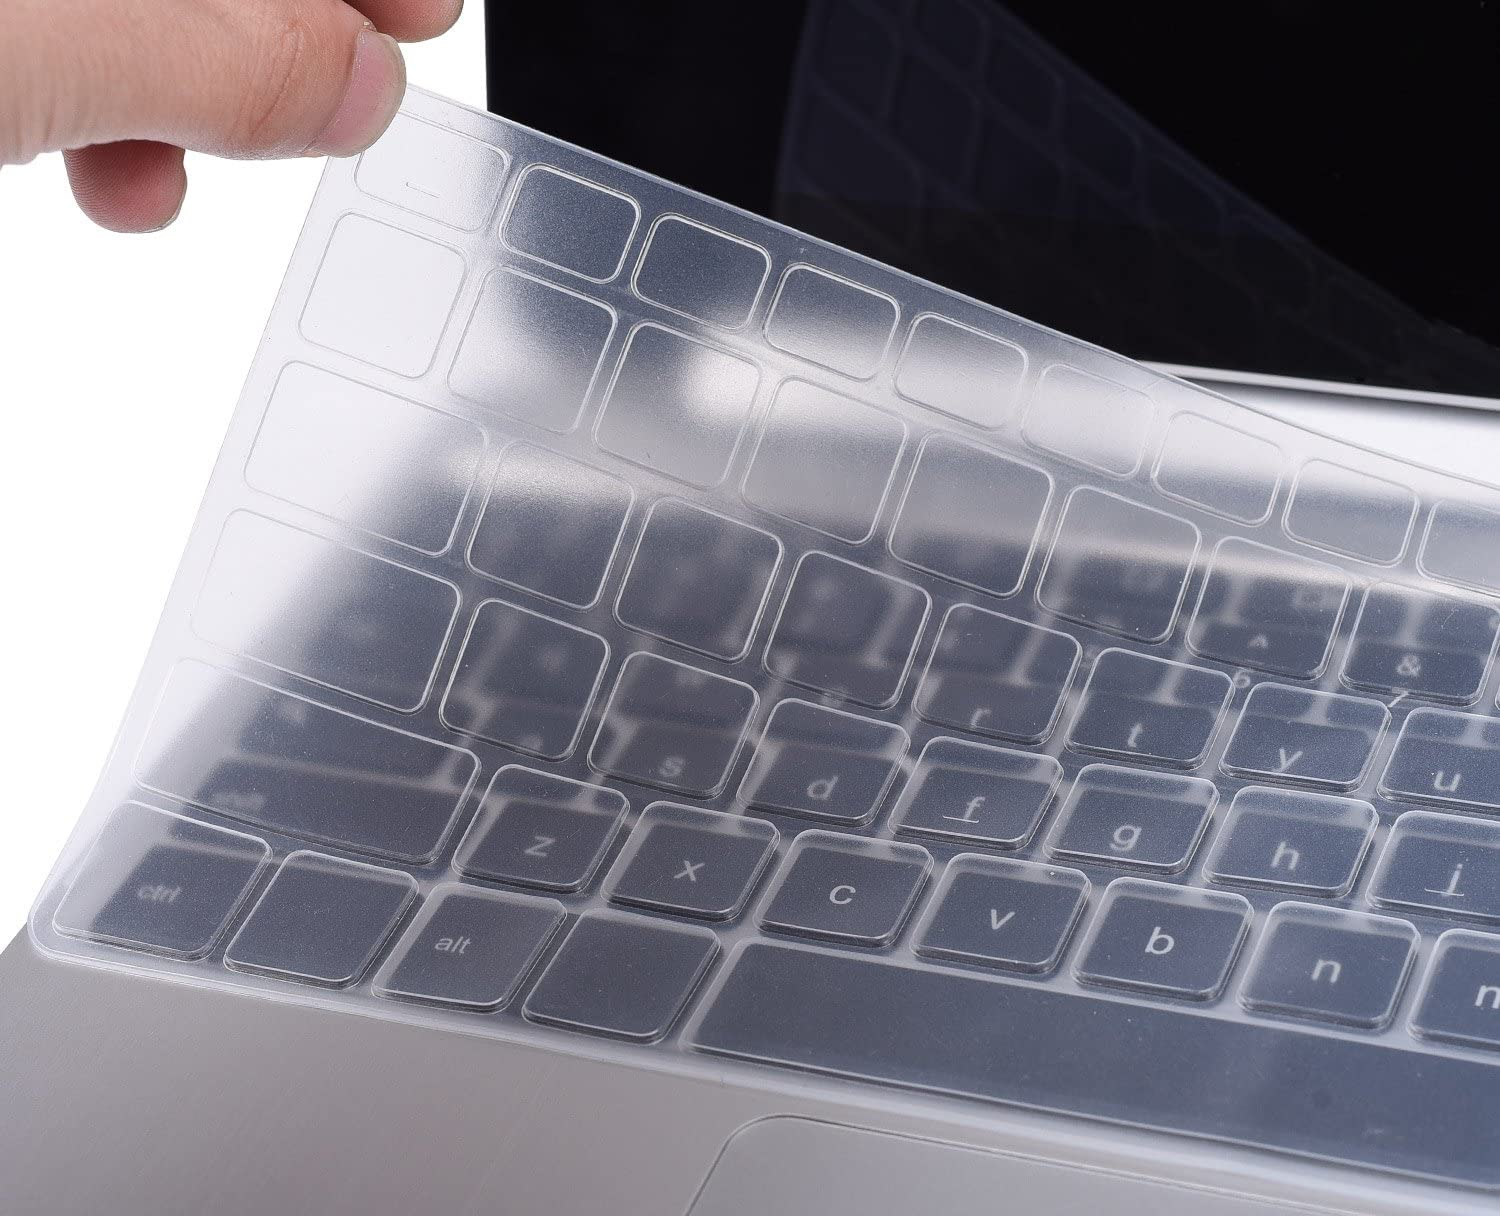 "CaseBuy Ultrathin Silicone Keyboard Protector Cover Skin for 11.6"" Dell Inspiron 11-3162 11-3168 11-3169 11-3179 11-3180 11-3185 i3162 i3168 i3169 i3179 i3180 i3185 Laptop US Layout (Clear)"